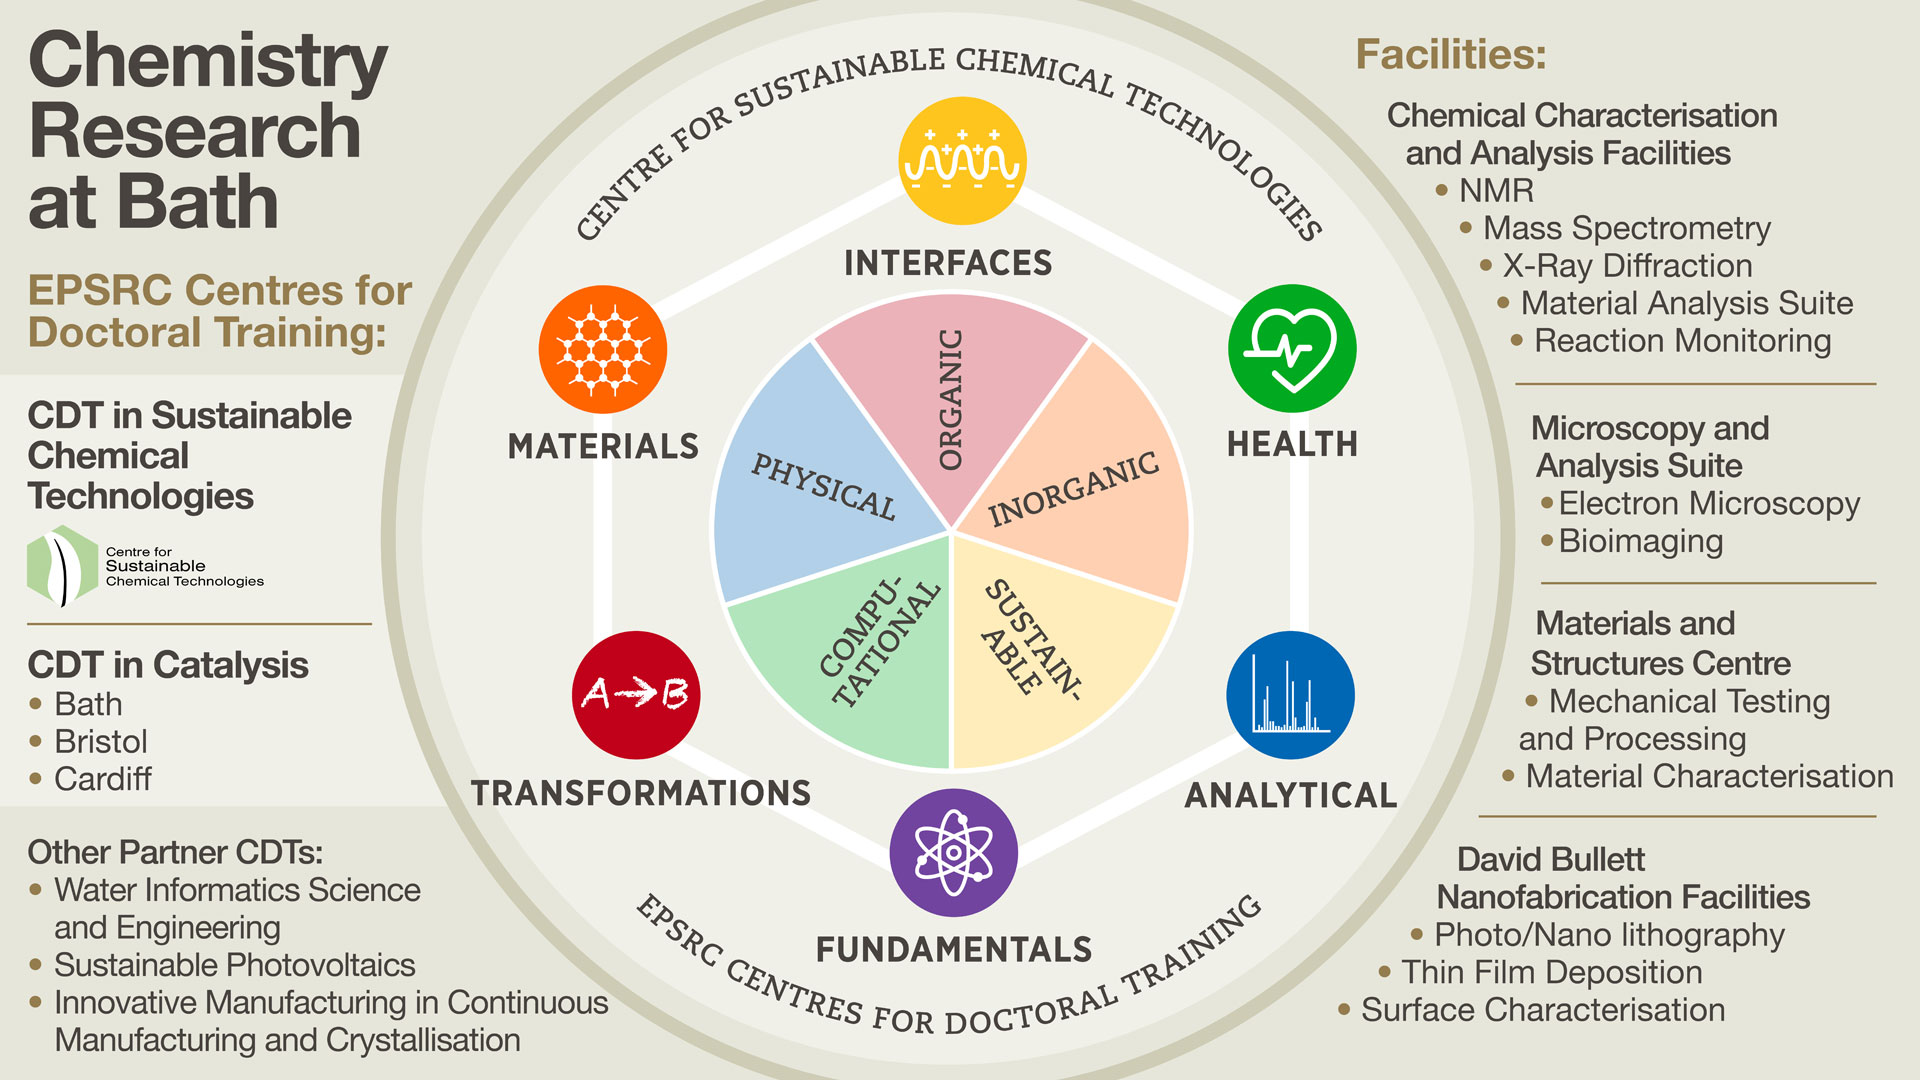 Graphic showing chemistry research themes, groups and facilities at Bath